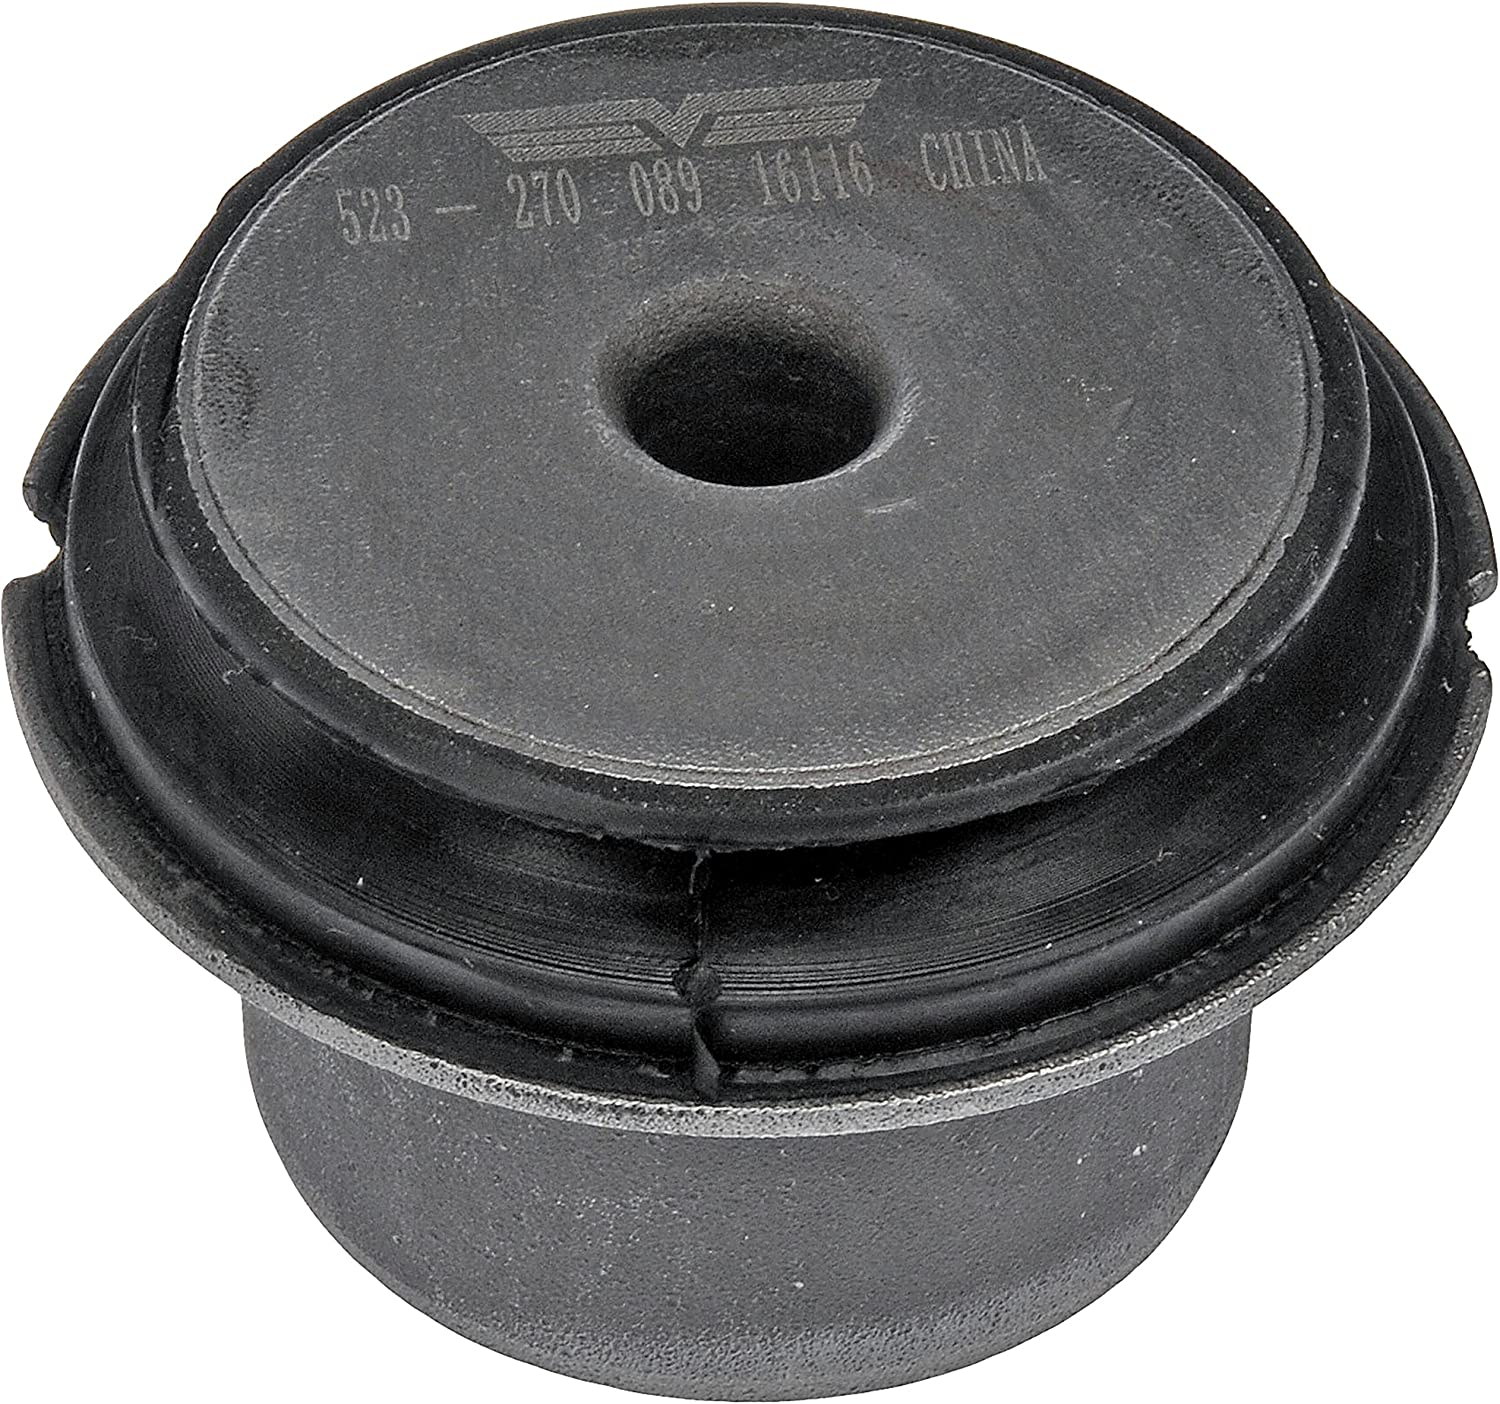 Dorman 523-270 Rear Differential Mount Some reservation Pack 1 Manufacturer regenerated product Bushing